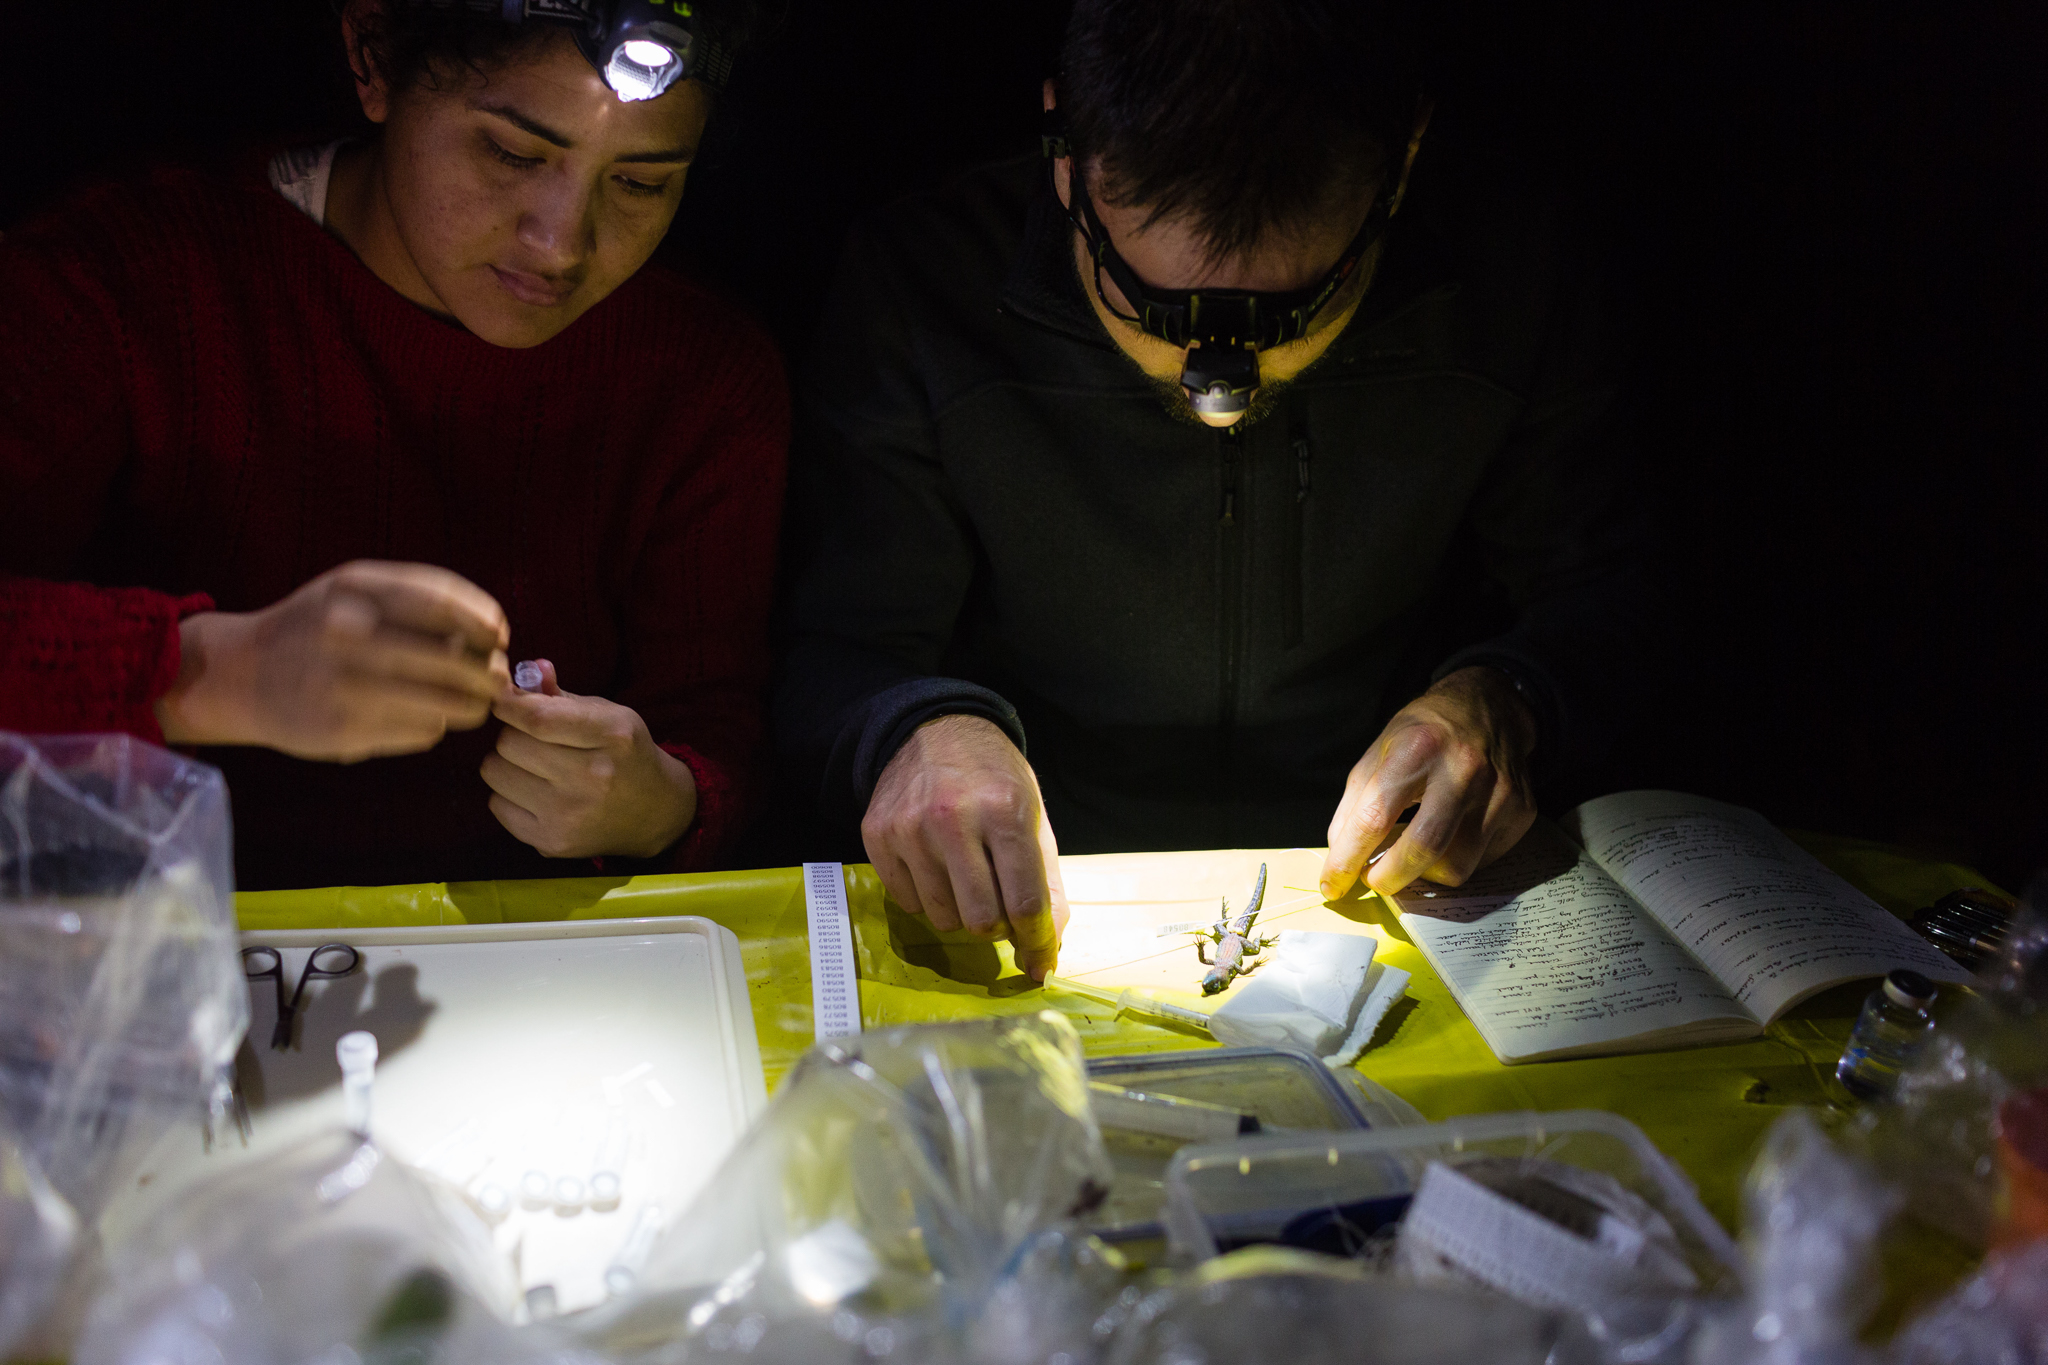 Dr. Santiago Castroviejo and Peruvian biologist Liz Gomez process specimens at the lab table at Camp 2. Photo by Andy Isaacson